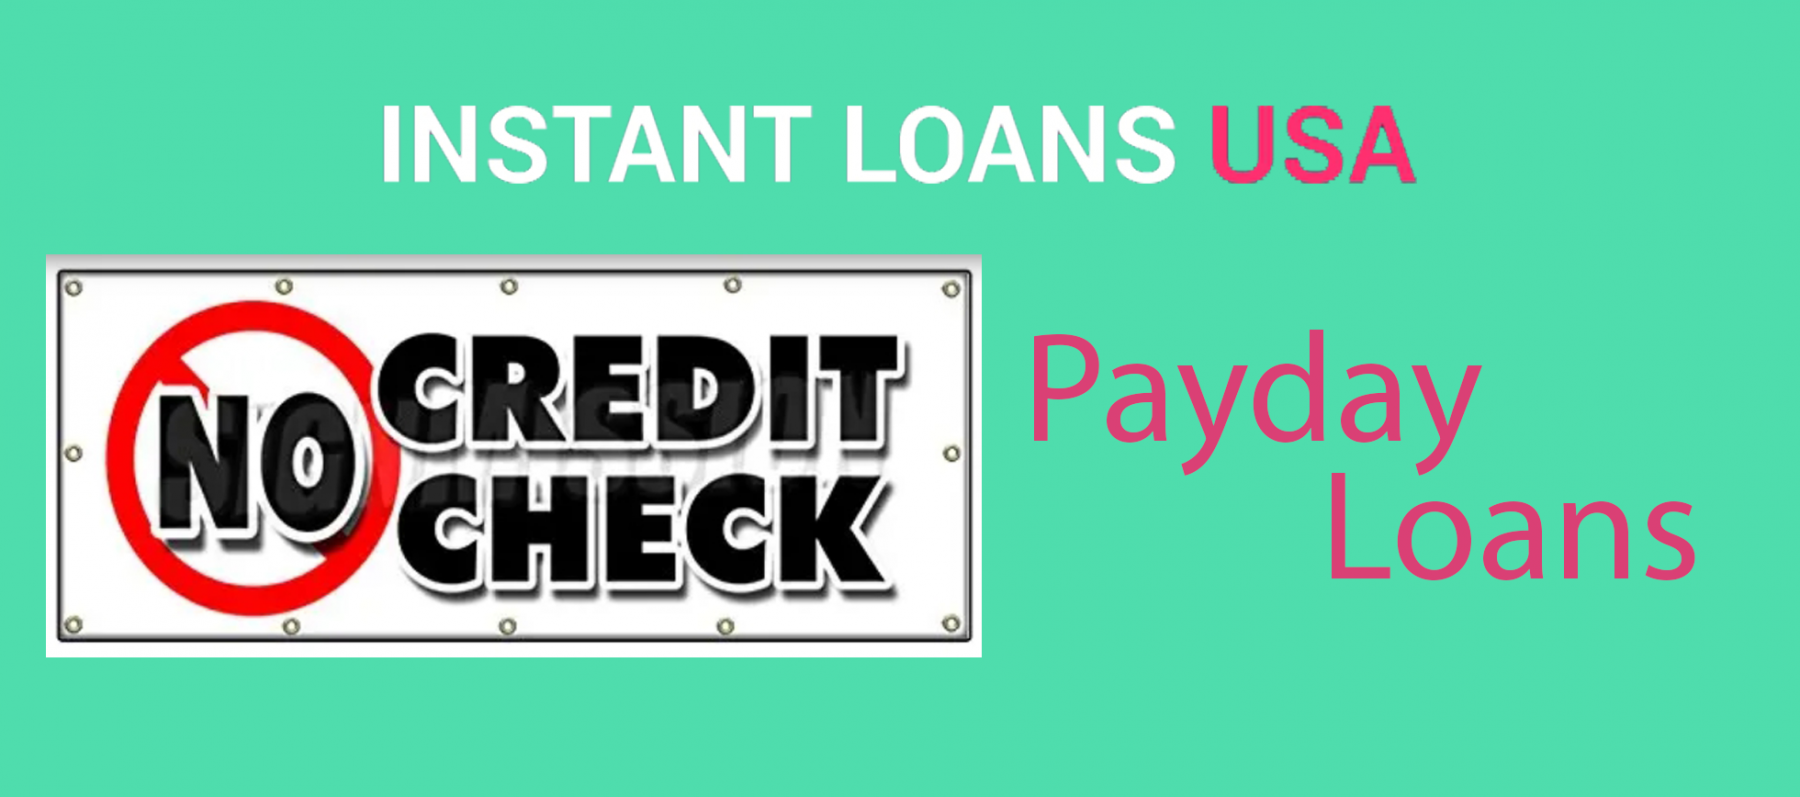 No Credit Check Payday Loan